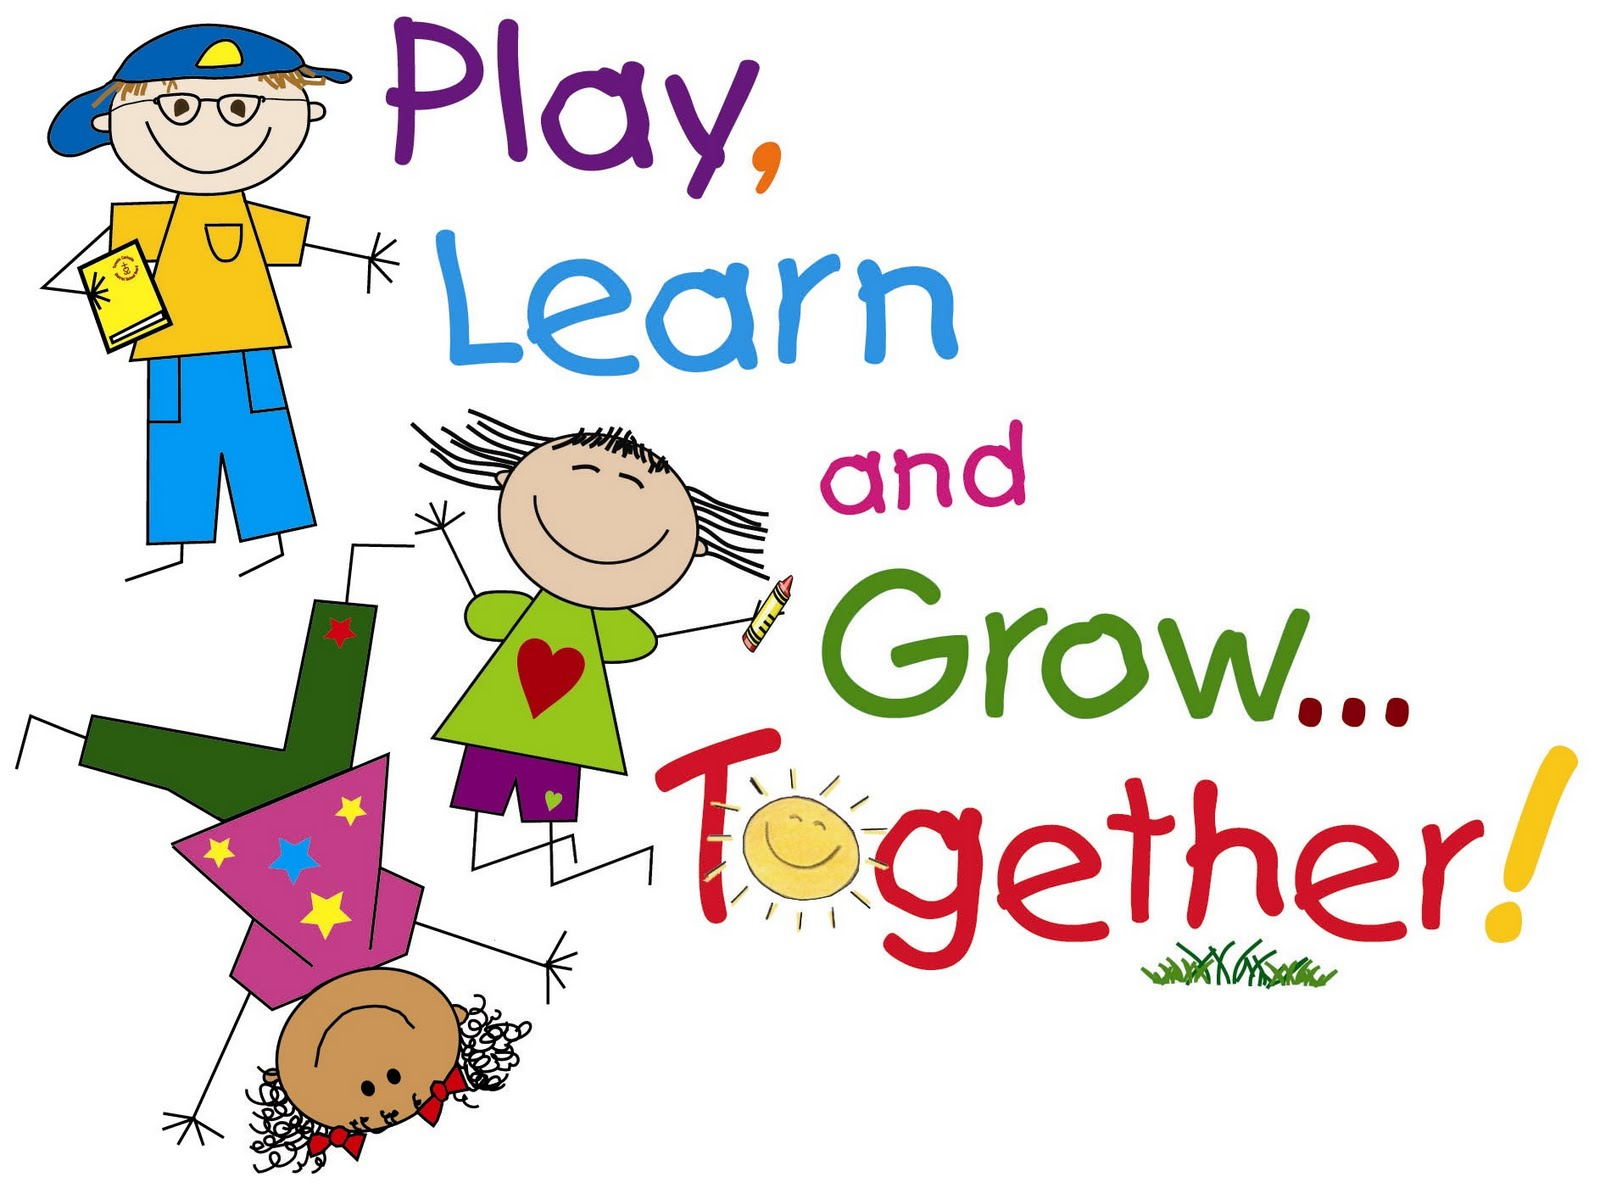 Kinder Garden: Mrs. Shelton's Kindergarten: Disclosures, School Rules